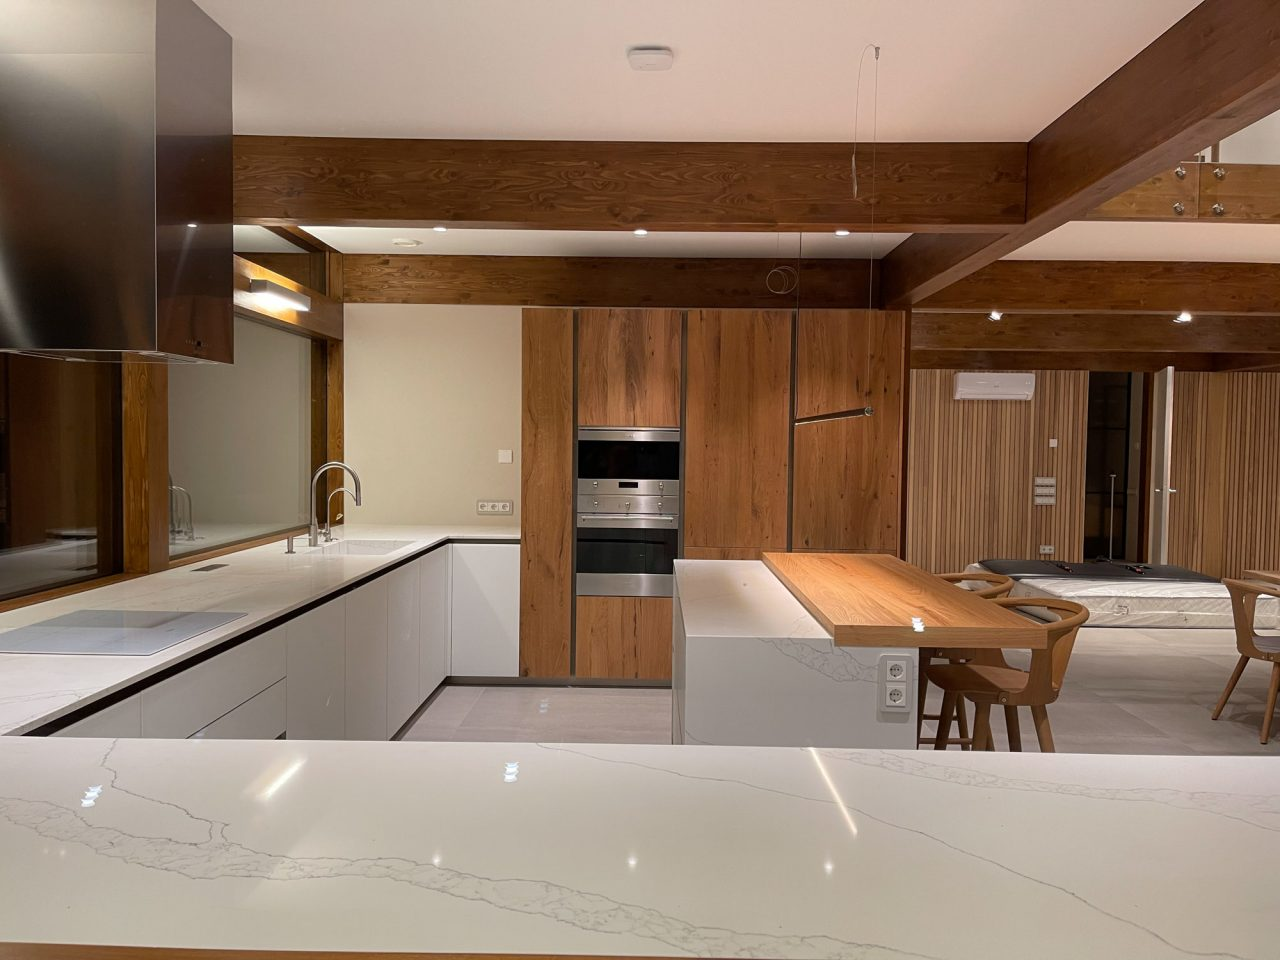 Hlass_house_KAGER - Hurii_35